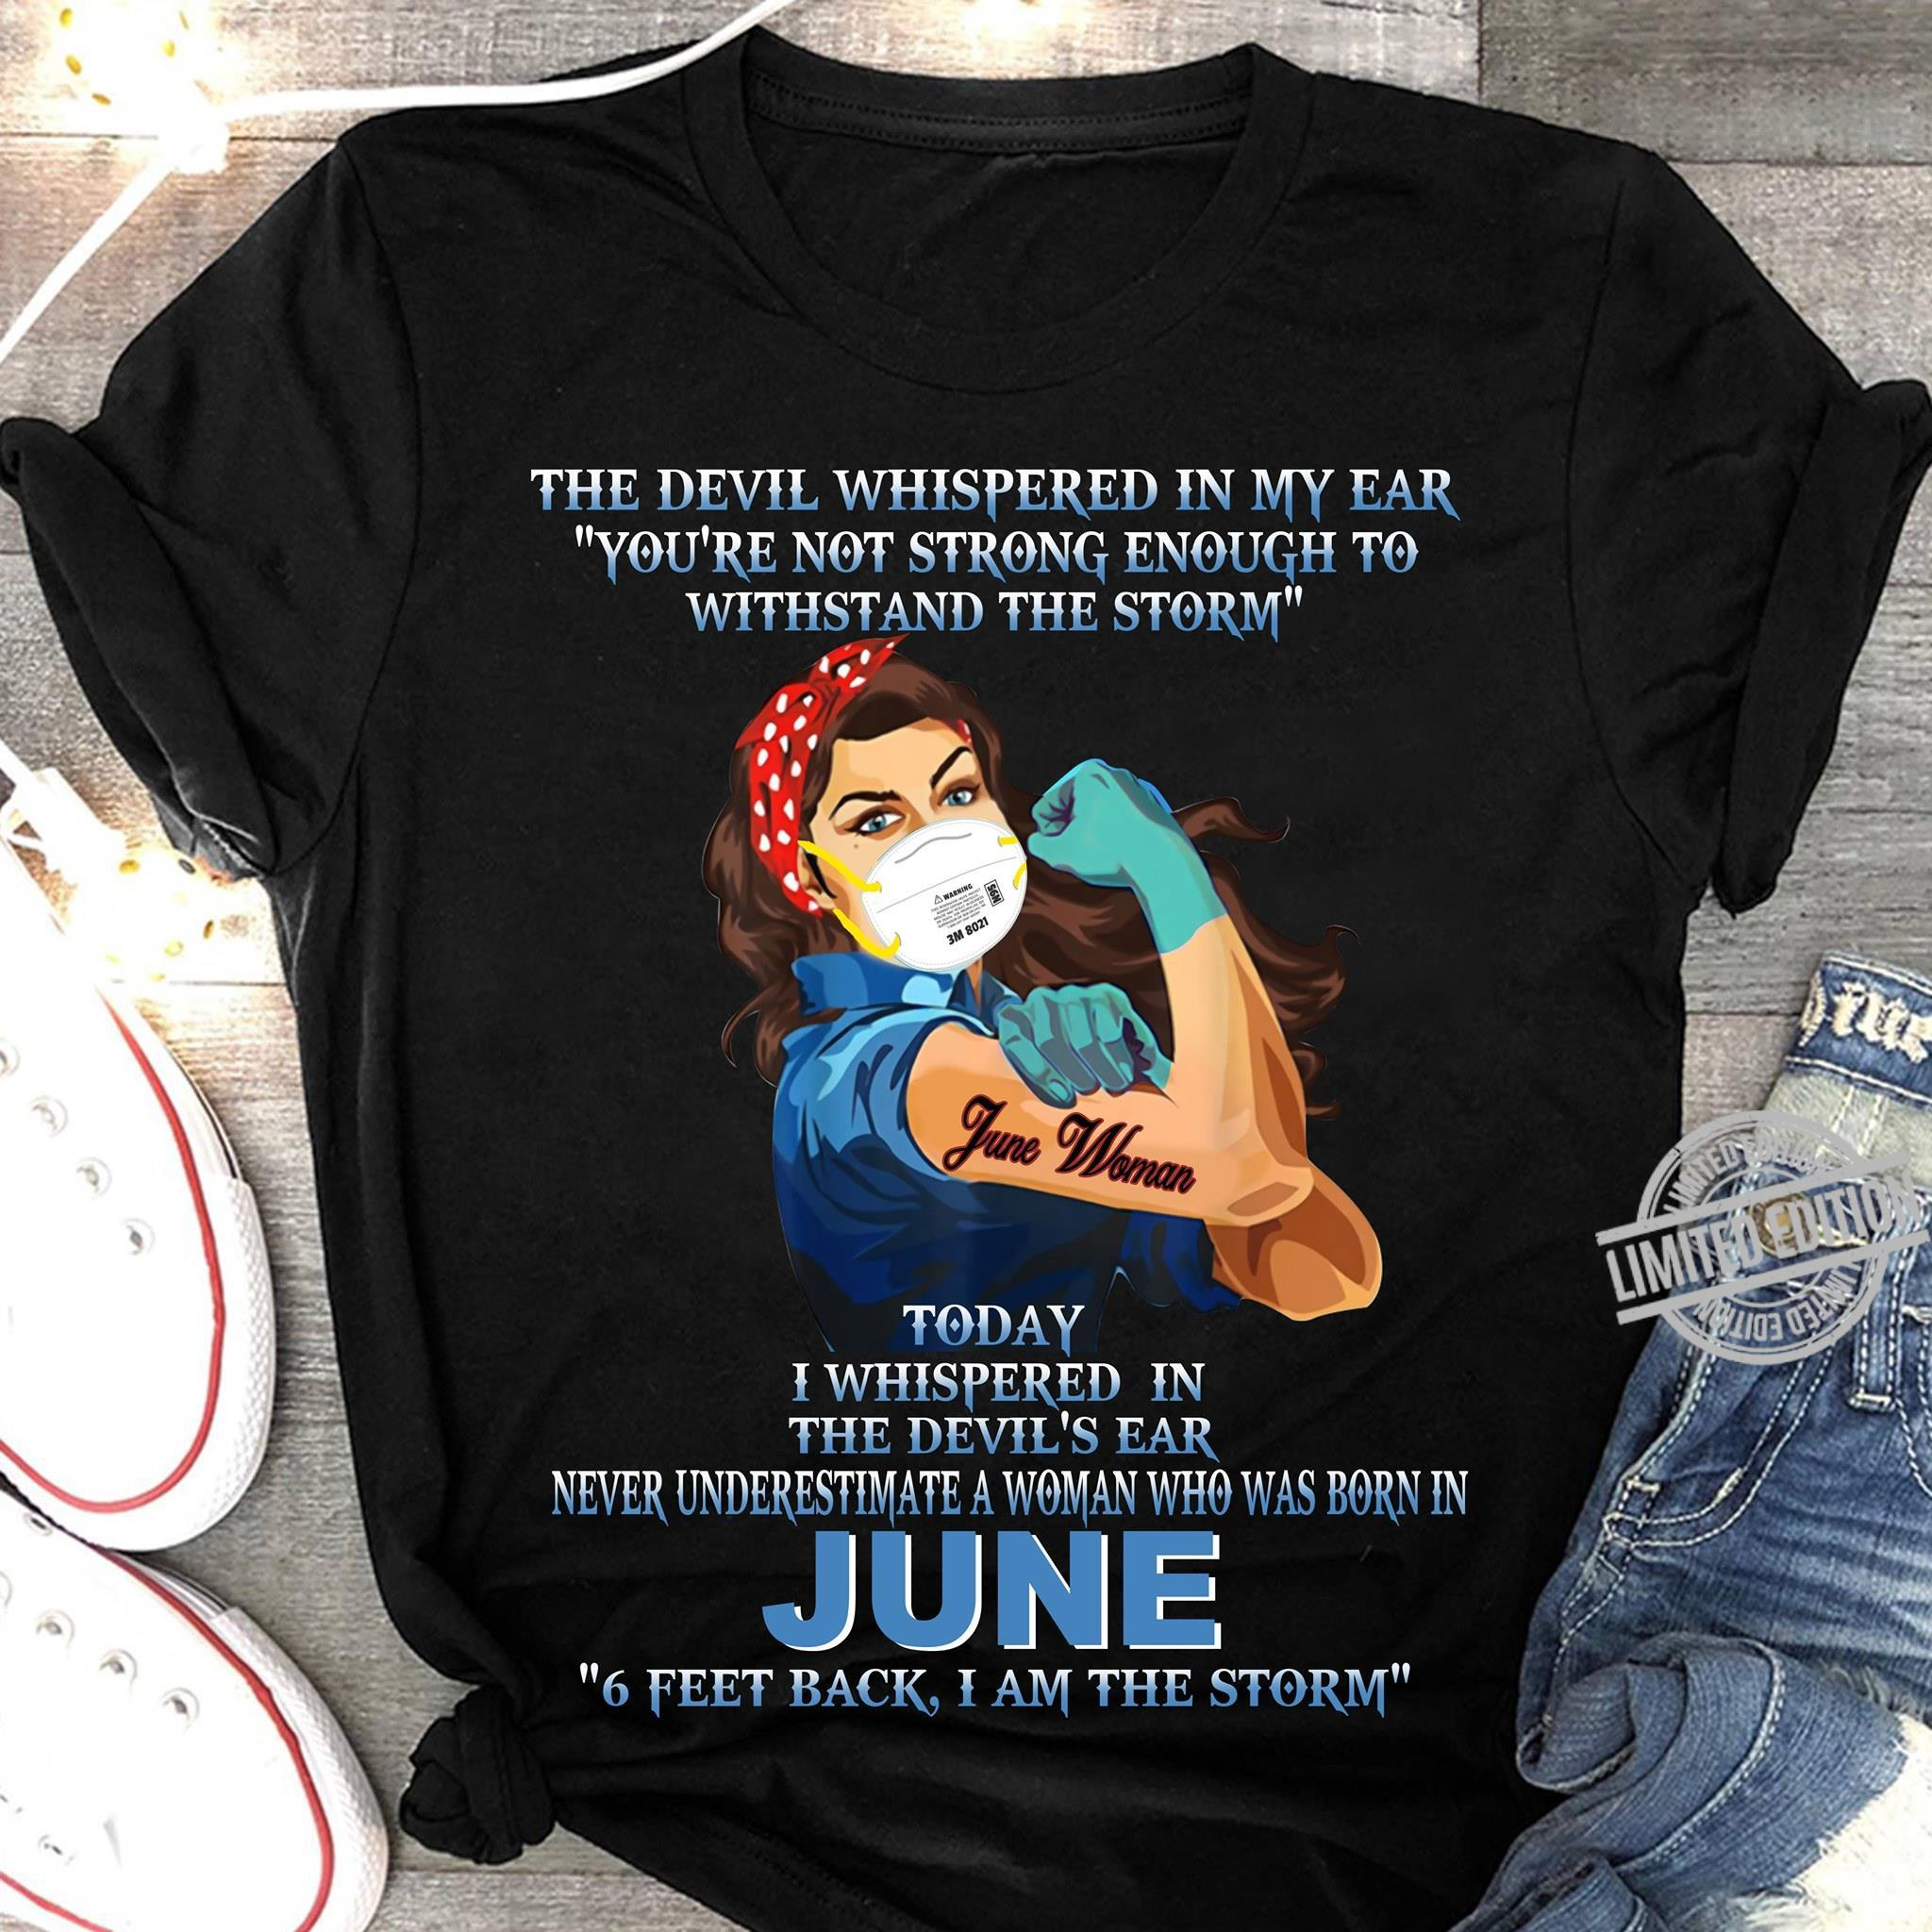 The Devil Whispered In My Ear You're Not Strong Enough To Withstand The Storm Today I Whispered In The Devil's Ear Never Underestimate A Woman Who Was Born In June Shirt Shirt